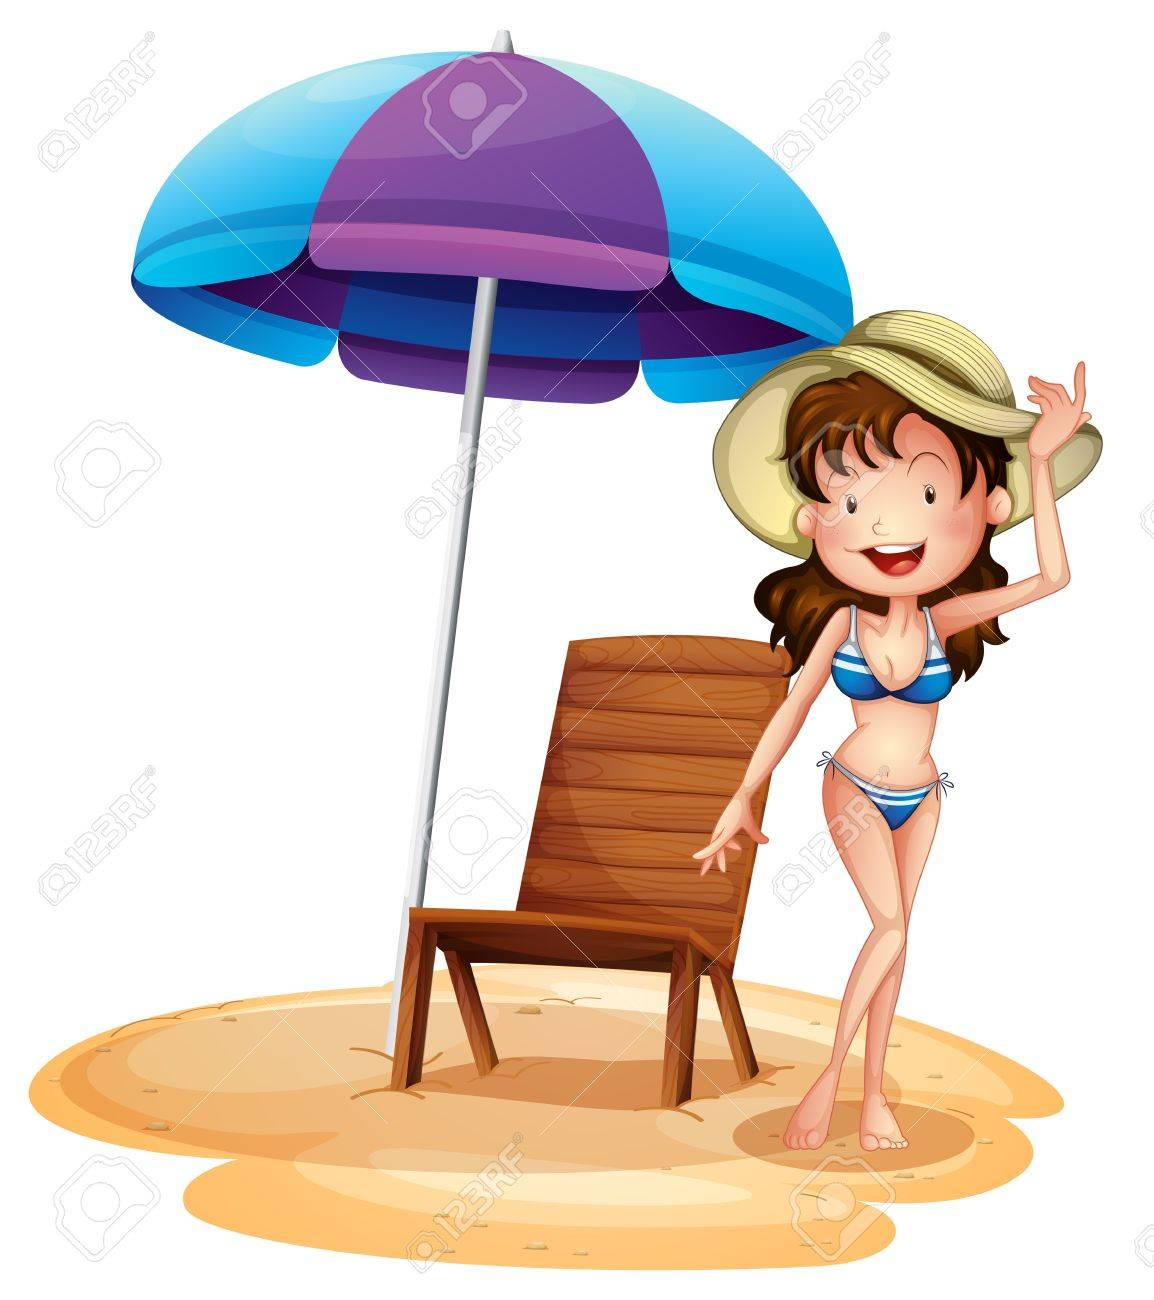 Illustration of a girl wearing a bikini beside a summer chair and umbrella on a white background Stock Vector - 18825288